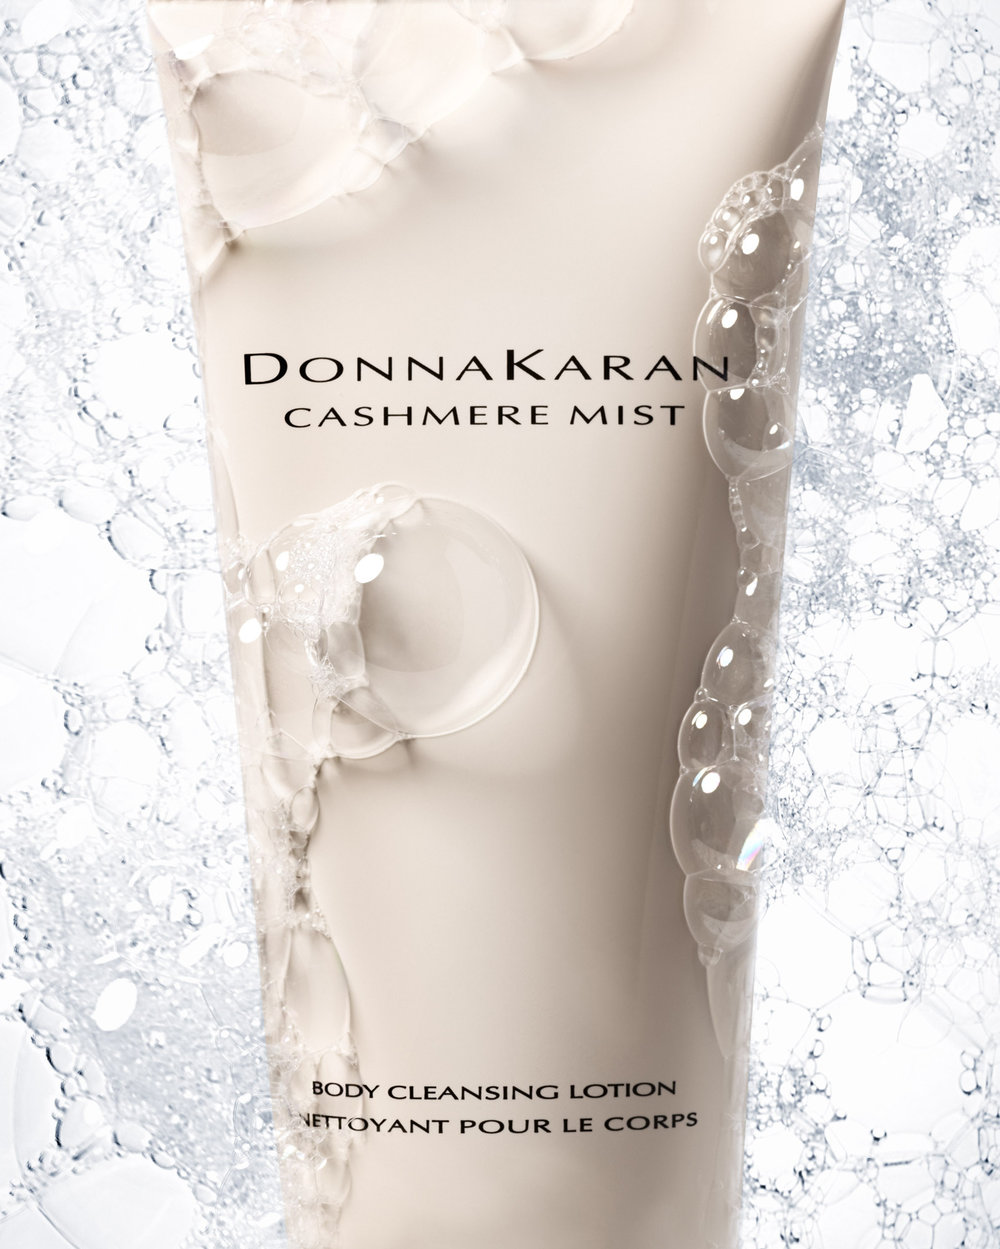 3087_14_MC_DKNY_+++D1_Texture_Cleansing_Lotion_13915_R1_1_CROP.jpg